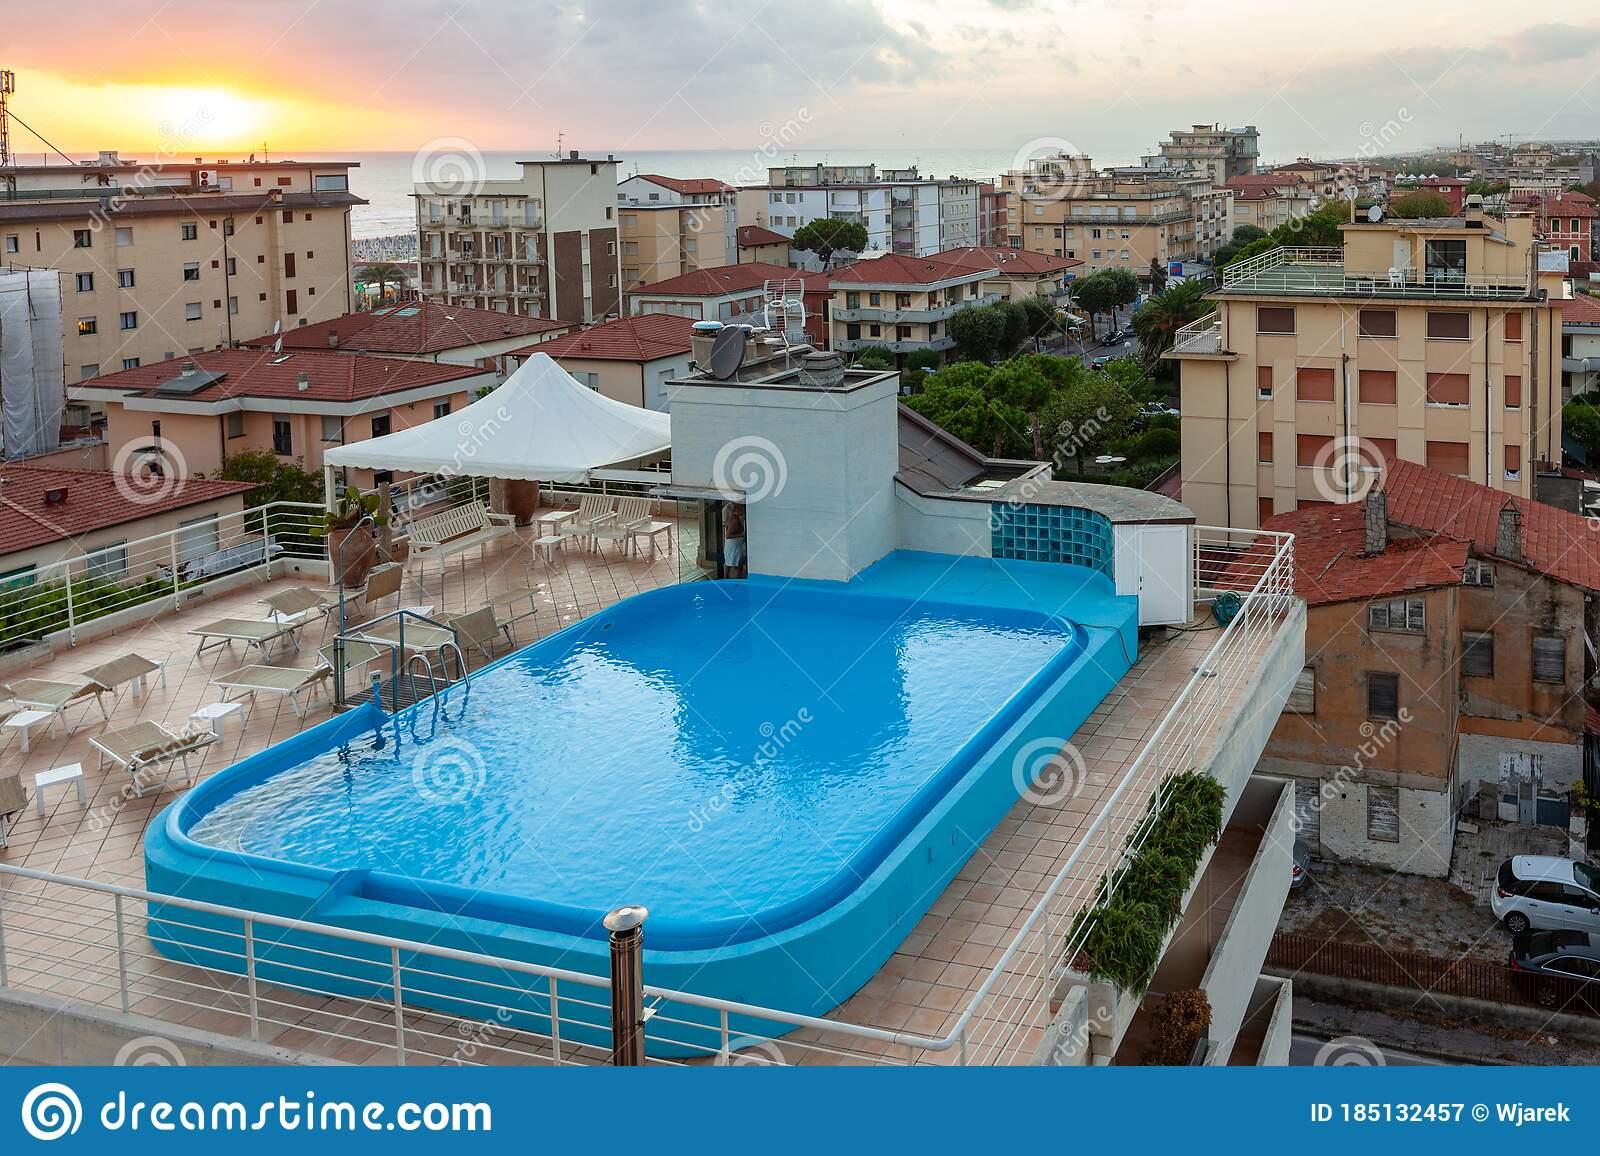 Hotel Rooftop Swimming Pool In Lido Di Camaiore Italy Editorial Photography Image Of Pool Italy 185132457